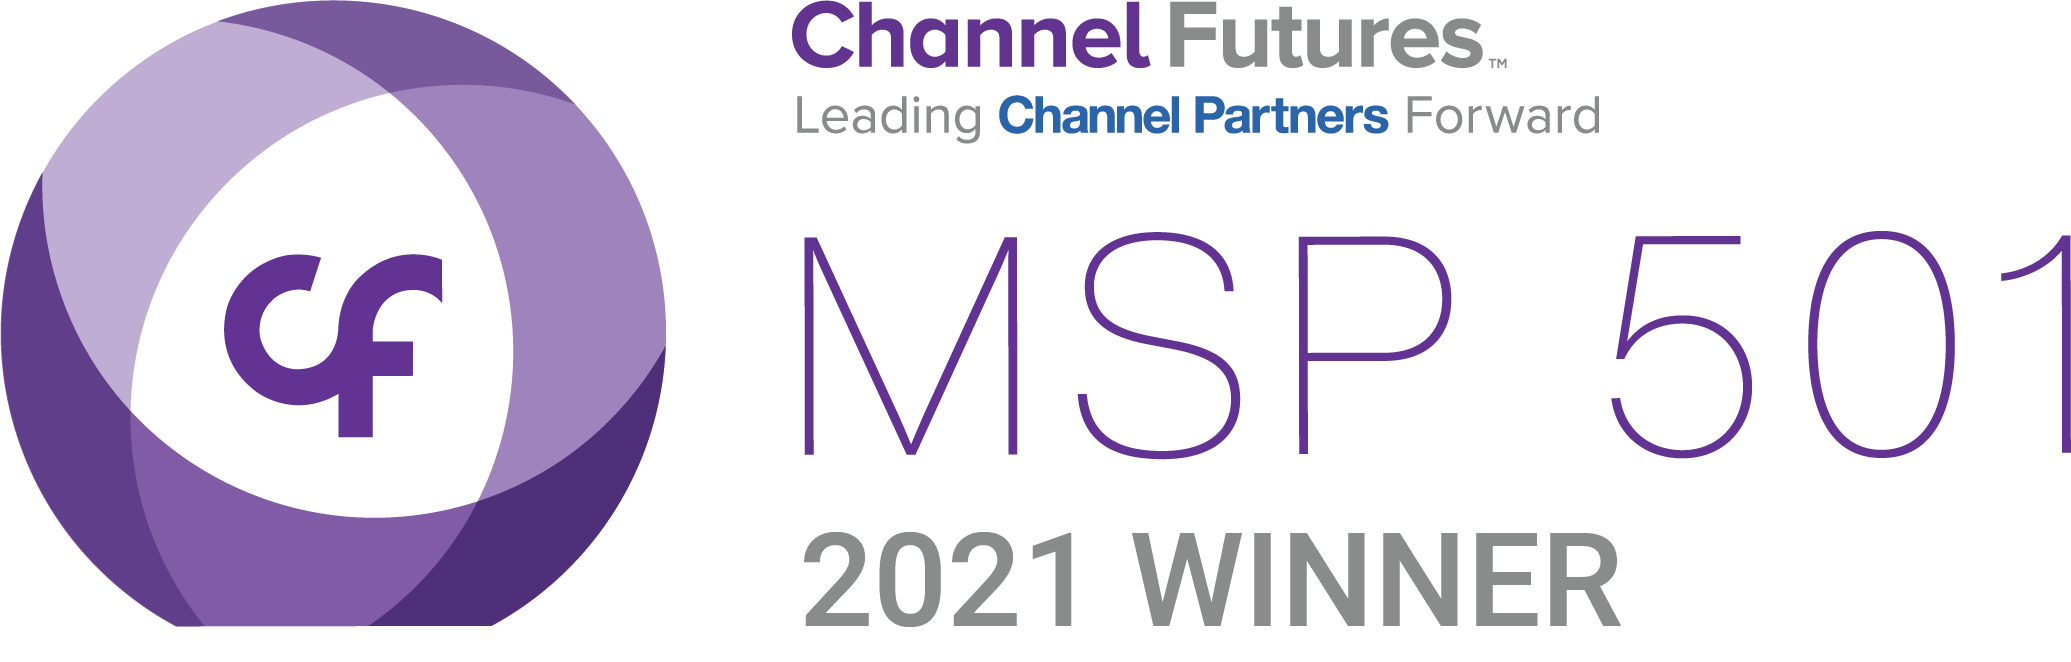 Channel Futures 2021